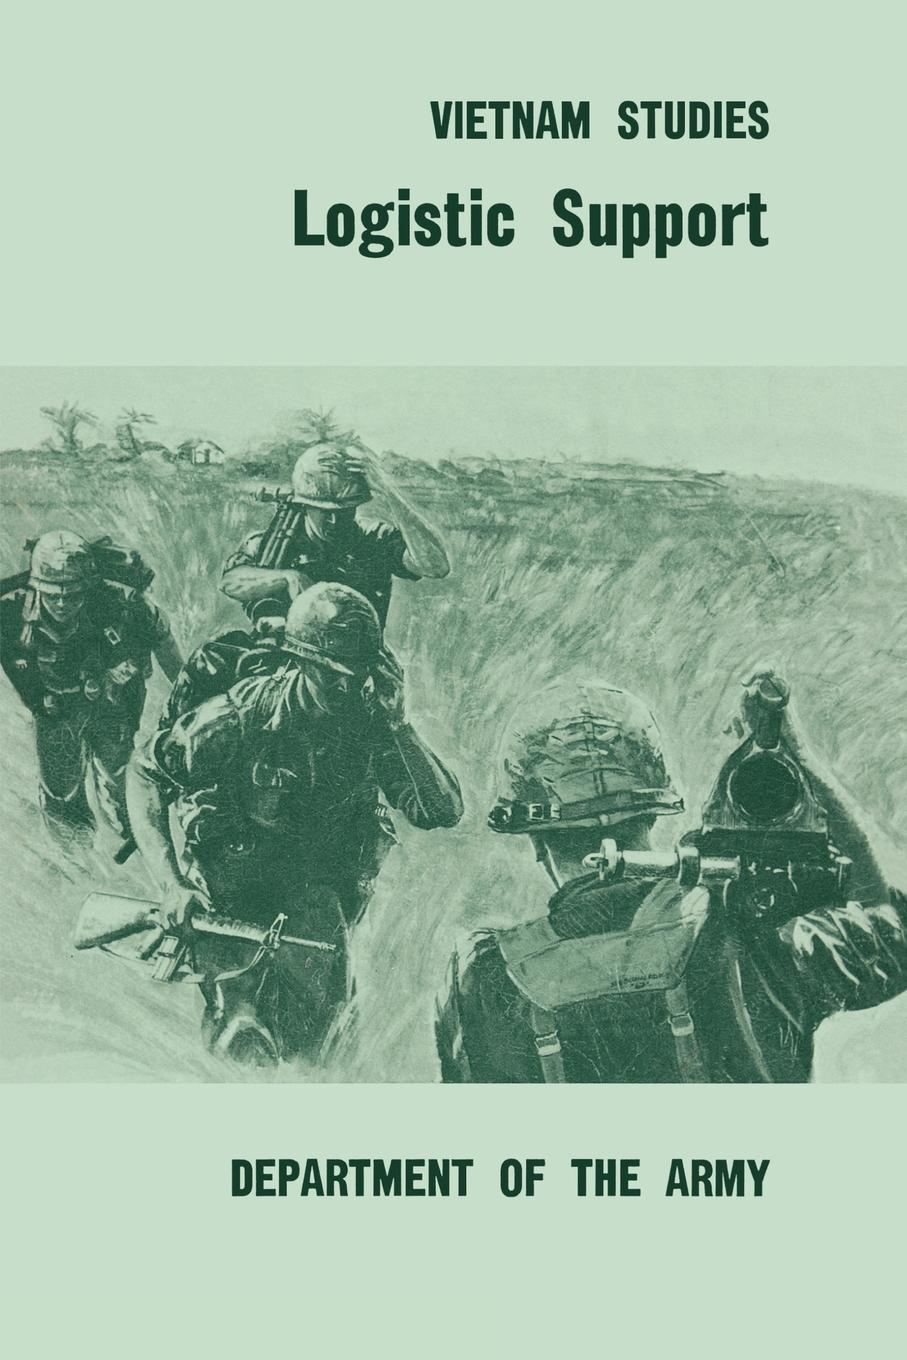 Joseph M. Heiser, United States Department of the Army Logistic Support peterson joseph the psychology of handling men in the army